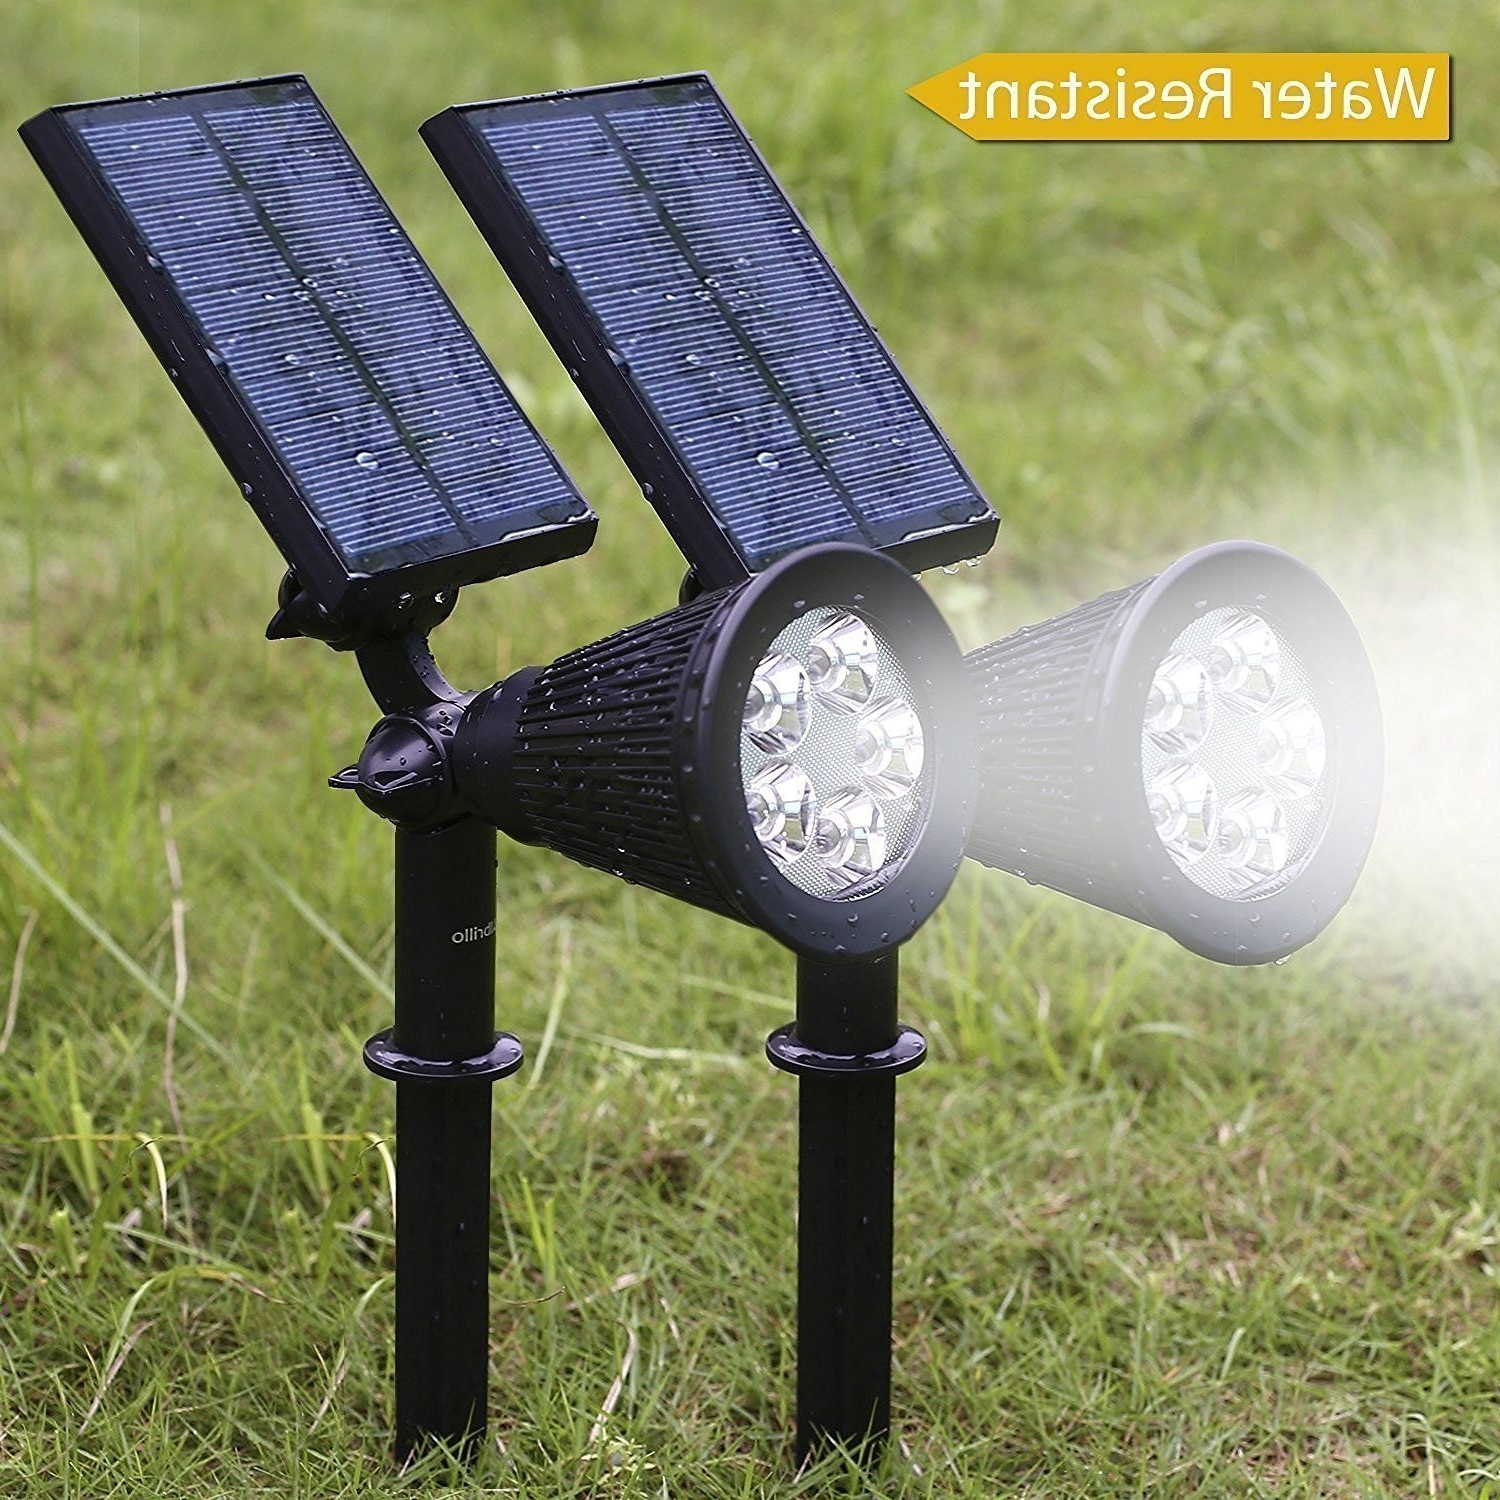 Outdoor Lights Amazon Best Of Albrillo 5 Led Solar Powered Spotlight With Regard To Newest Outdoor Lanterns At Amazon (View 11 of 20)